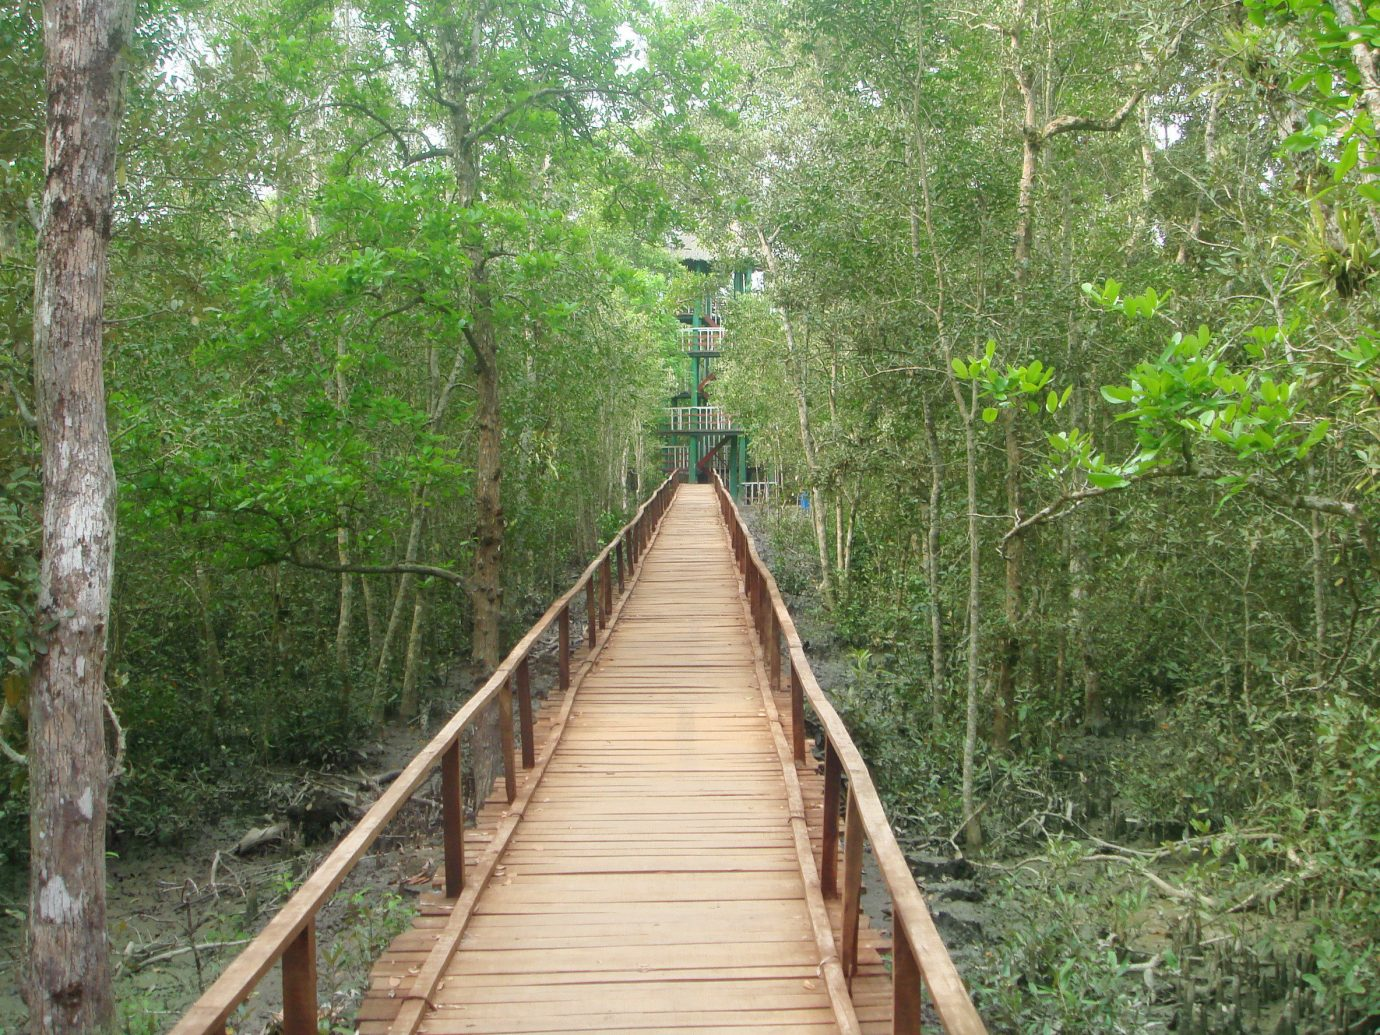 Trip Ideas tree outdoor habitat bridge natural environment rope bridge Forest canopy walkway wood track rolling stock woodland suspension bridge trail rainforest Jungle wooded plant nonbuilding structure lush